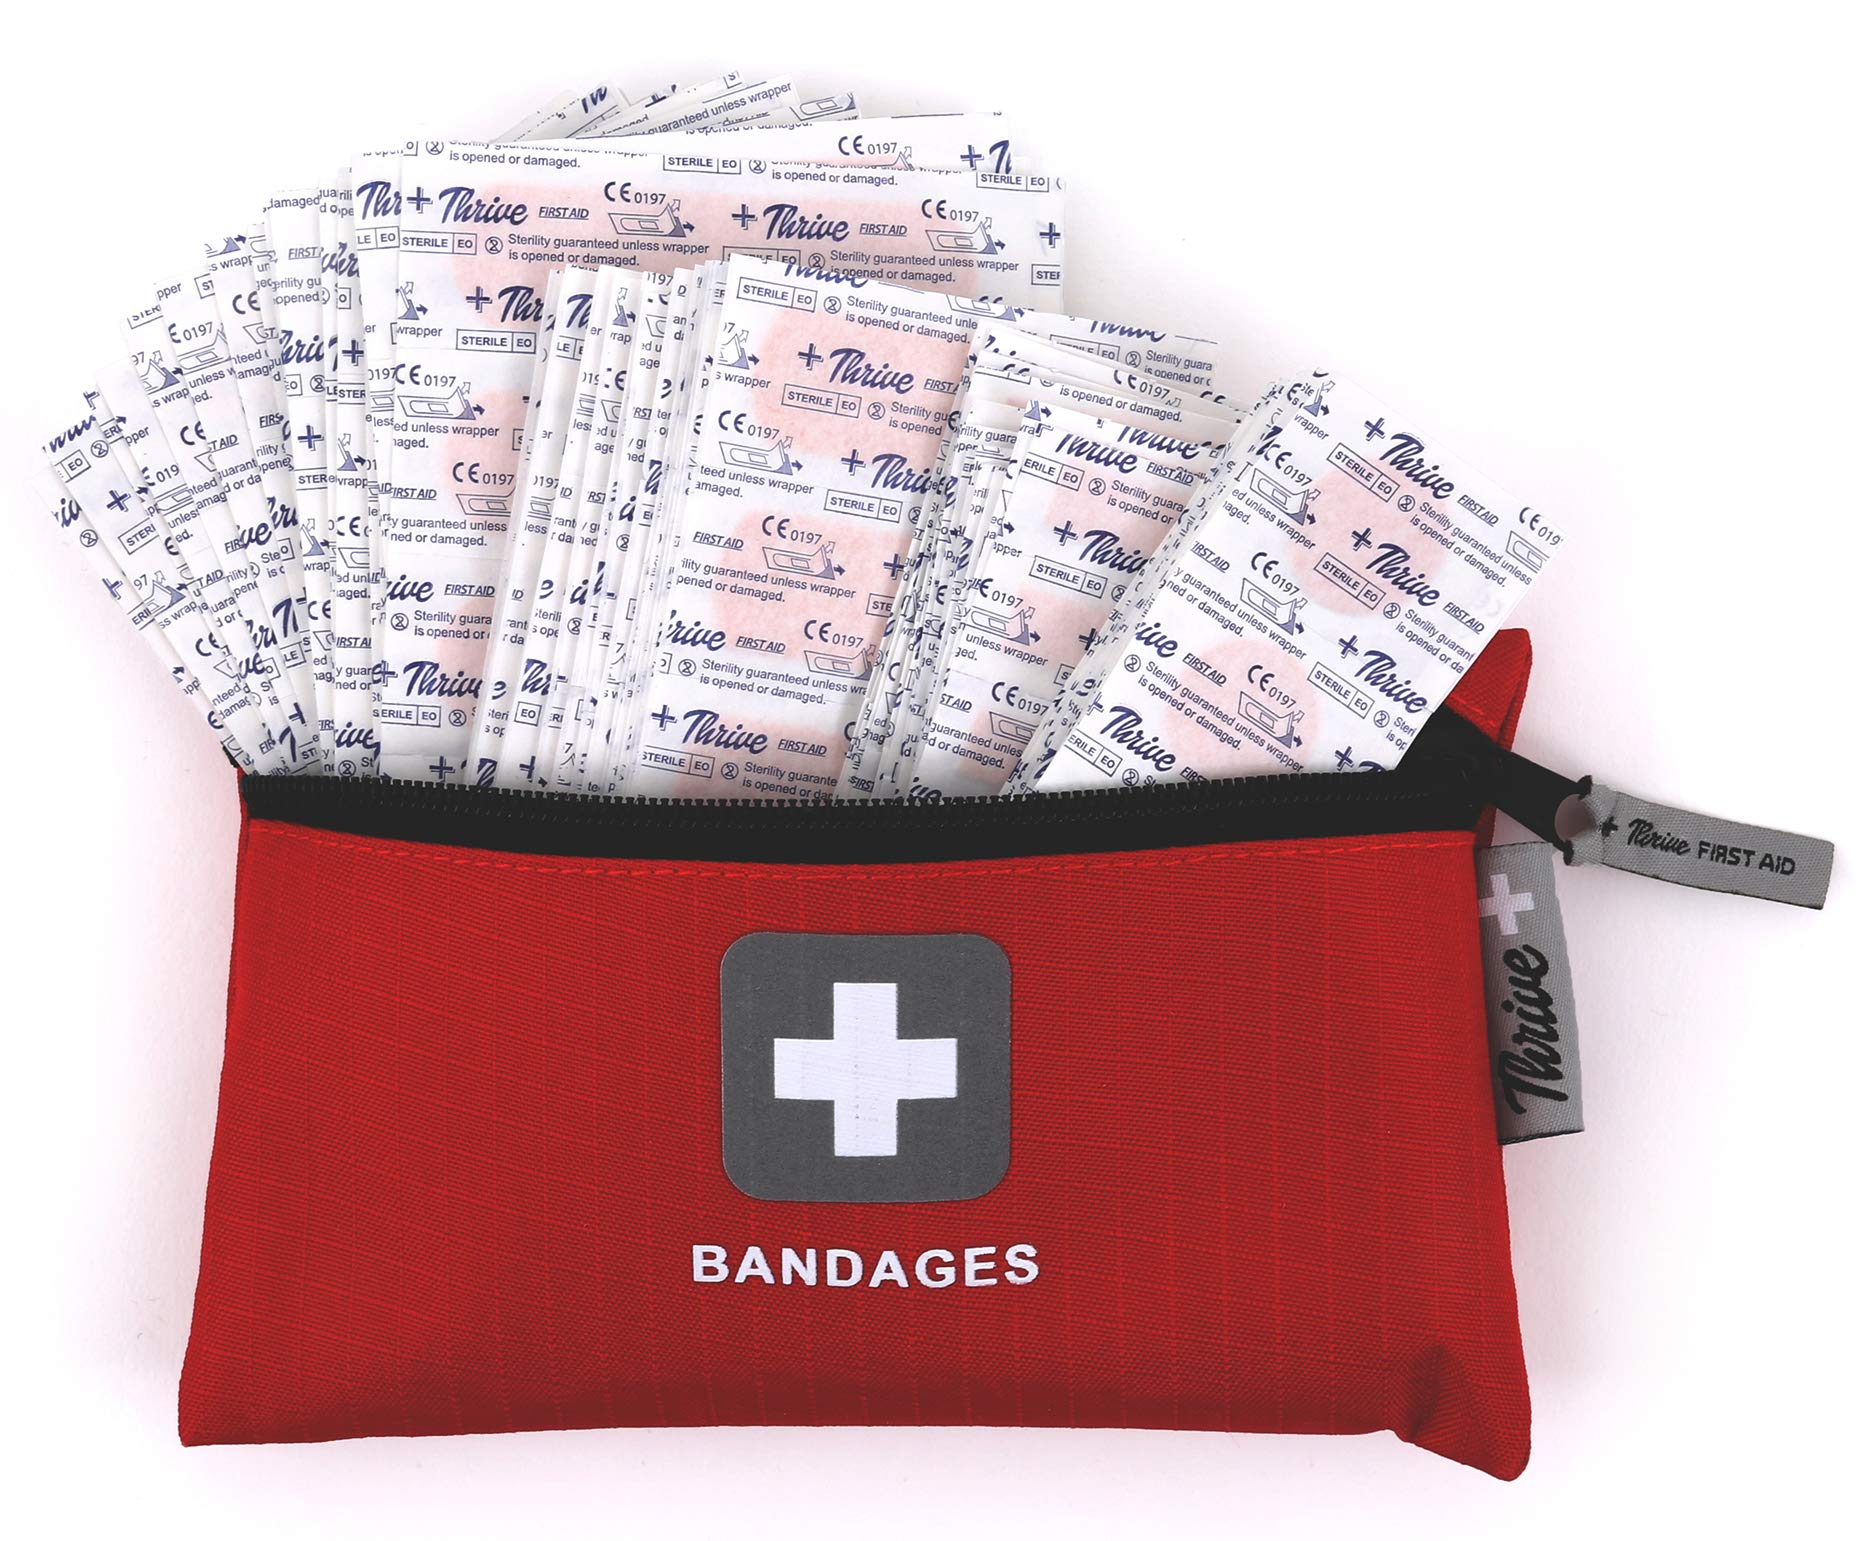 Adhesive Bandages – Pack of 305 Mixed Sizes Fabric Adhesive Bandages + Free Storage Bag. Tough and Flexible Cotton Elastic Fabric Strip Bands Aid healing